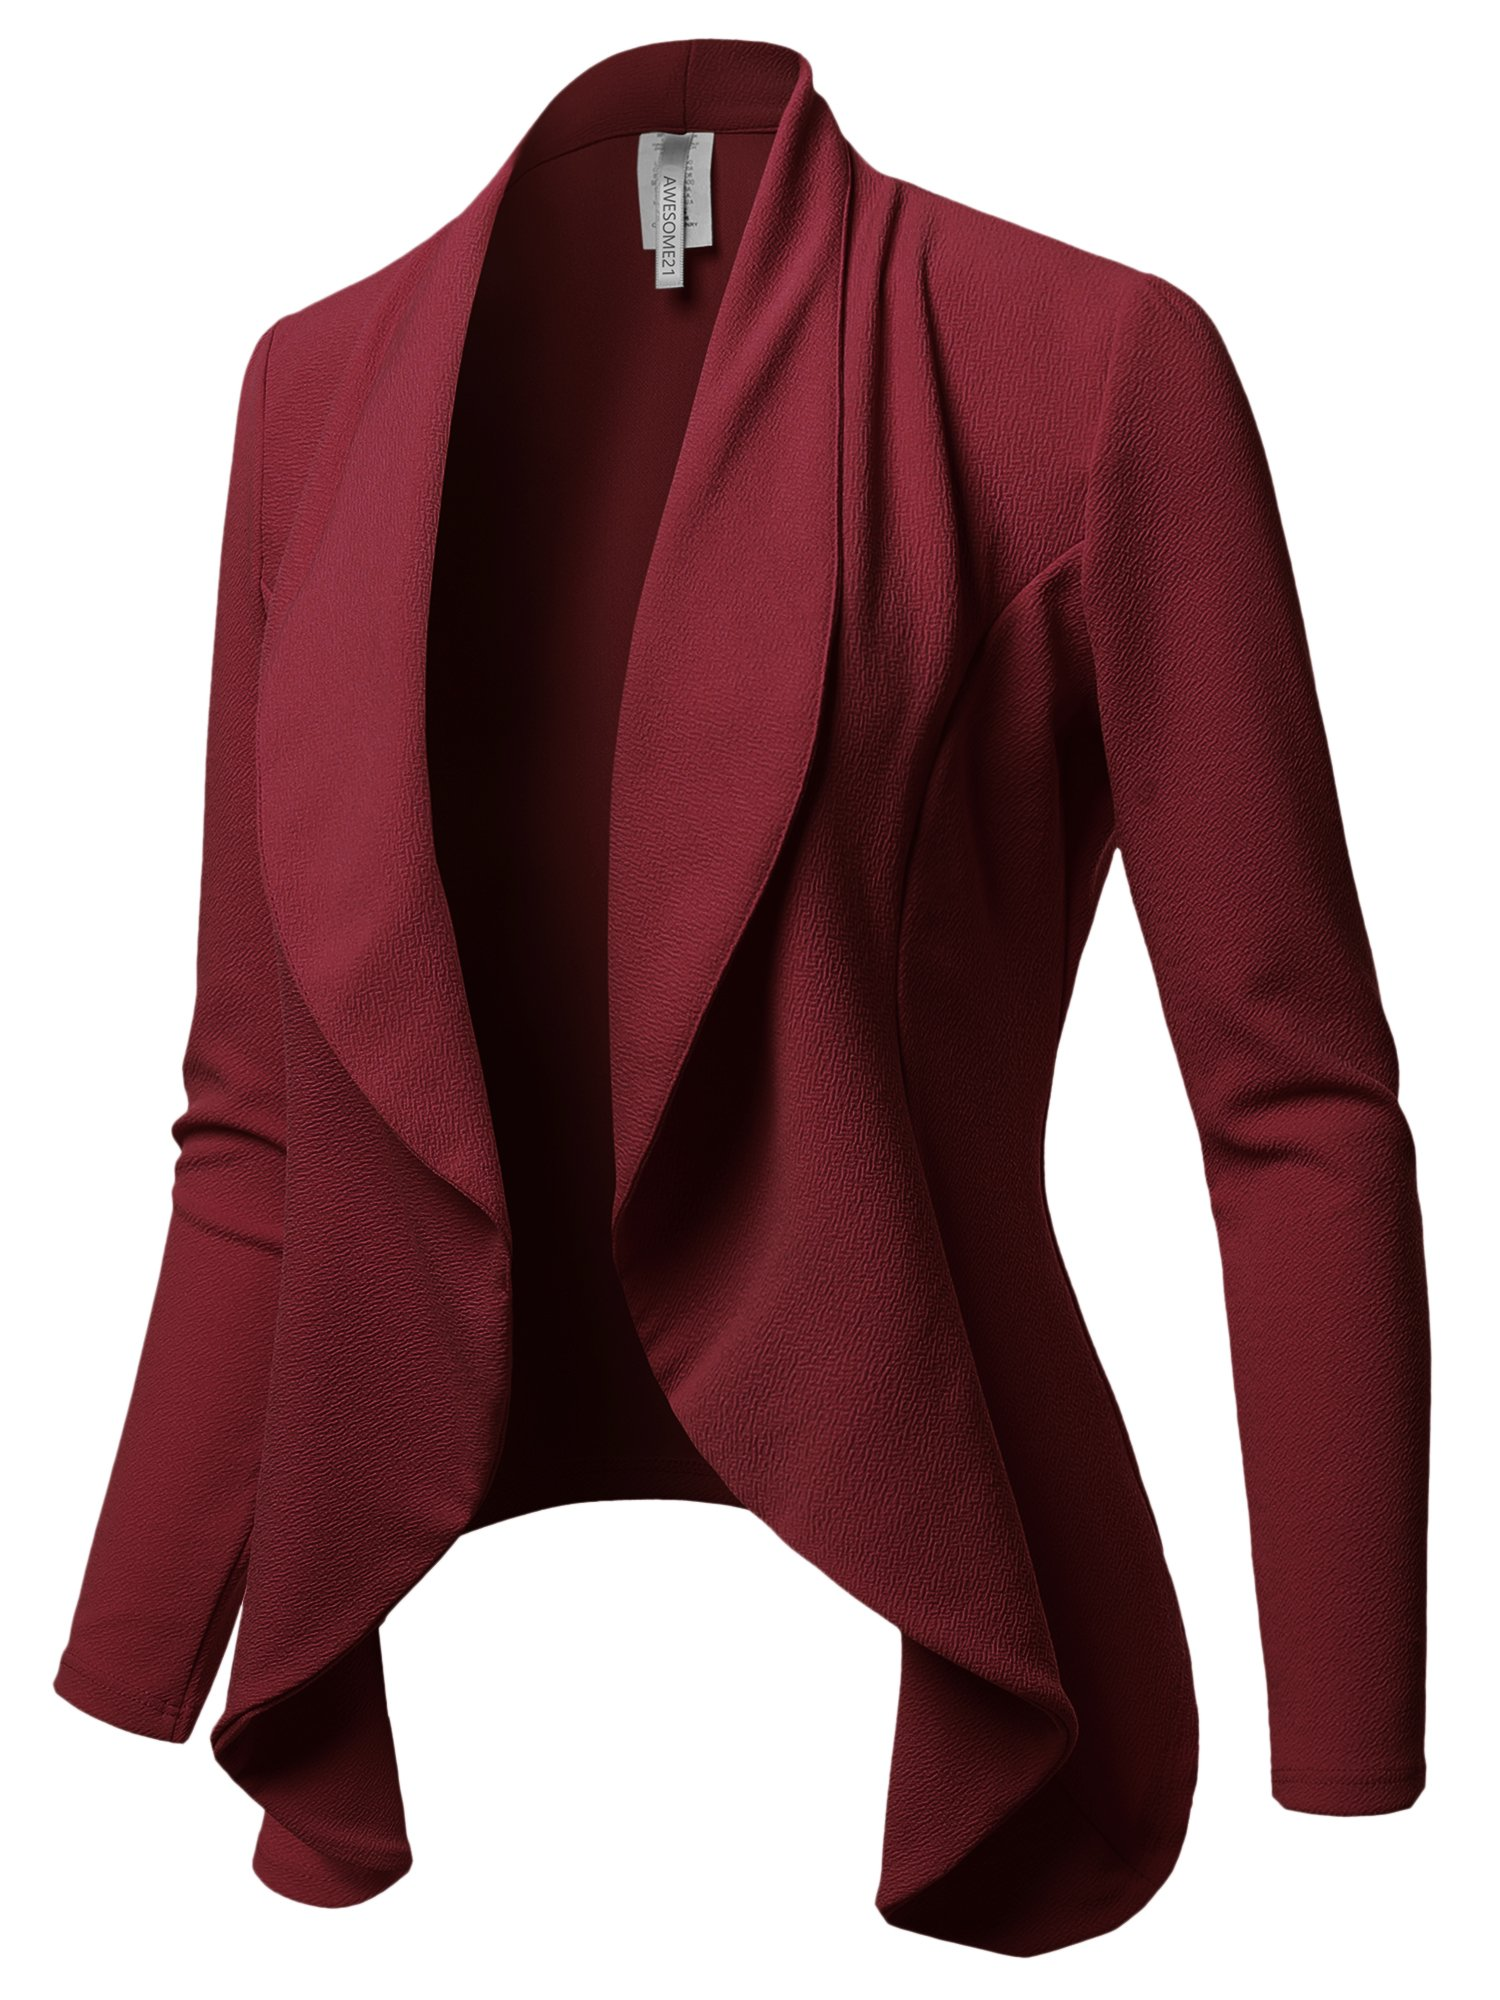 Awesome21 Solid Formal Office Open Front Long Sleeves Blazer - Made in USA Burgundy L